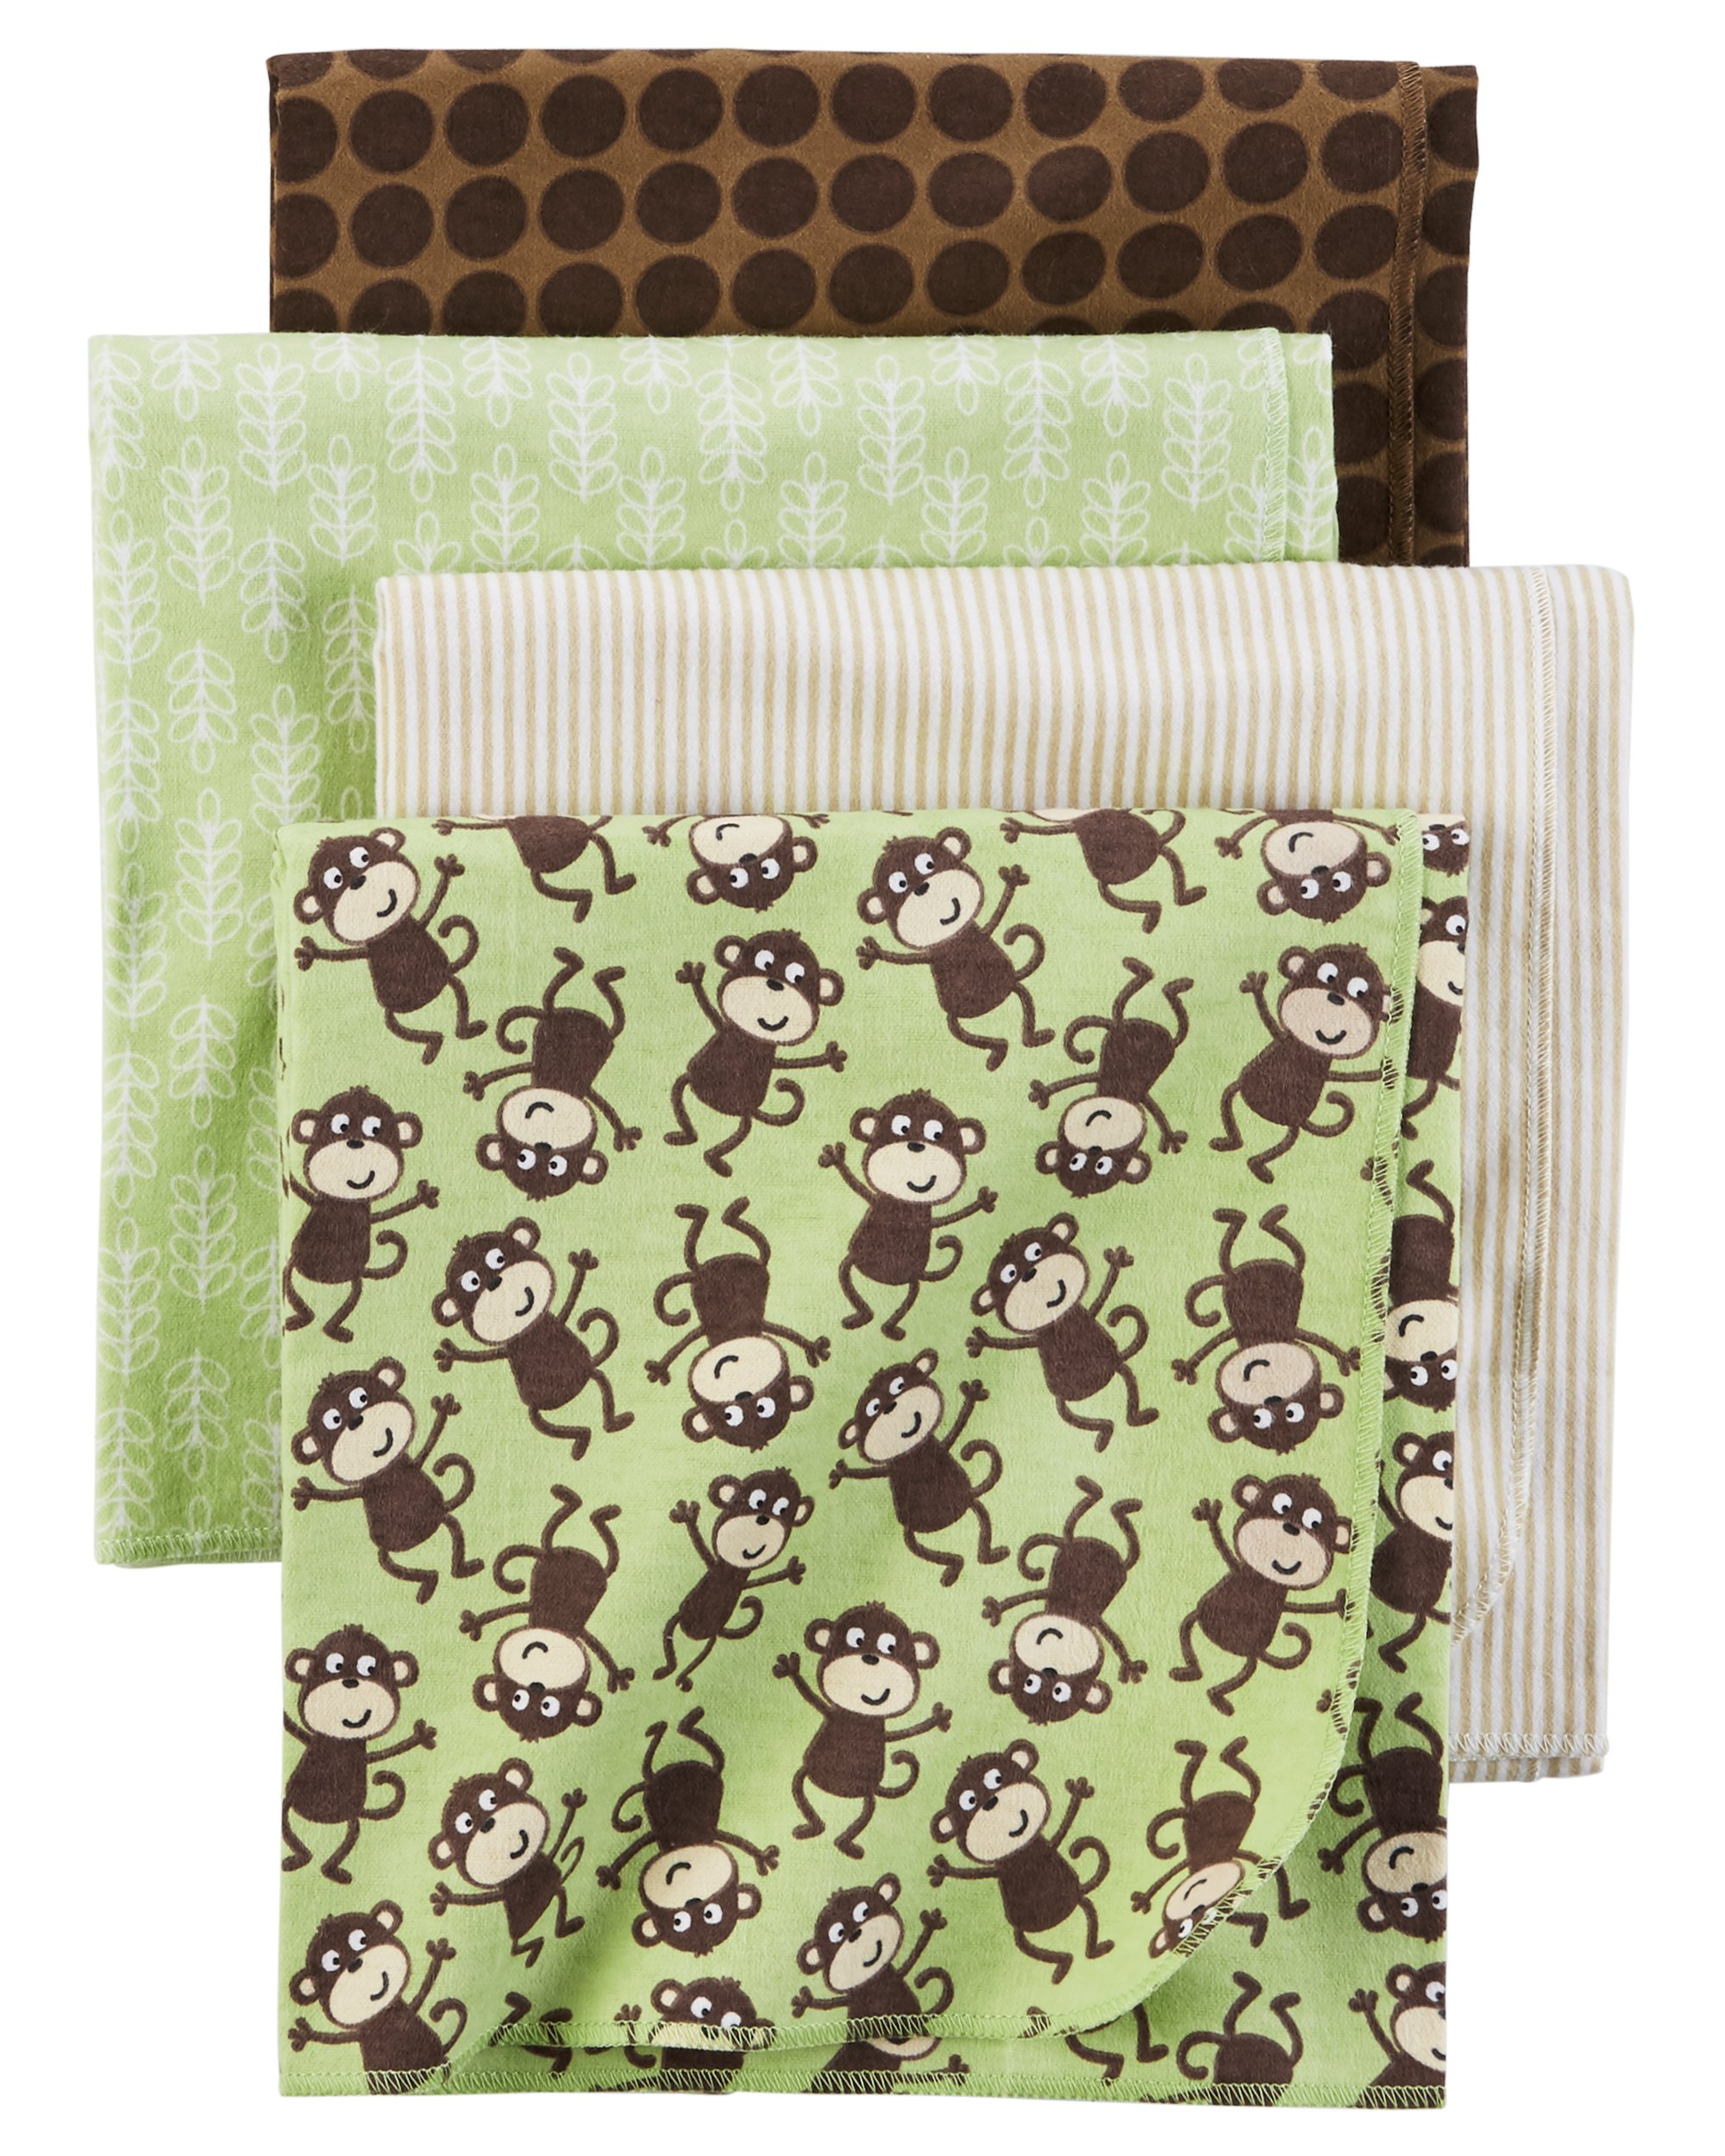 Carter's Baby 4 Pack Flannel Receiving Blanket, Monkey Print, One Size